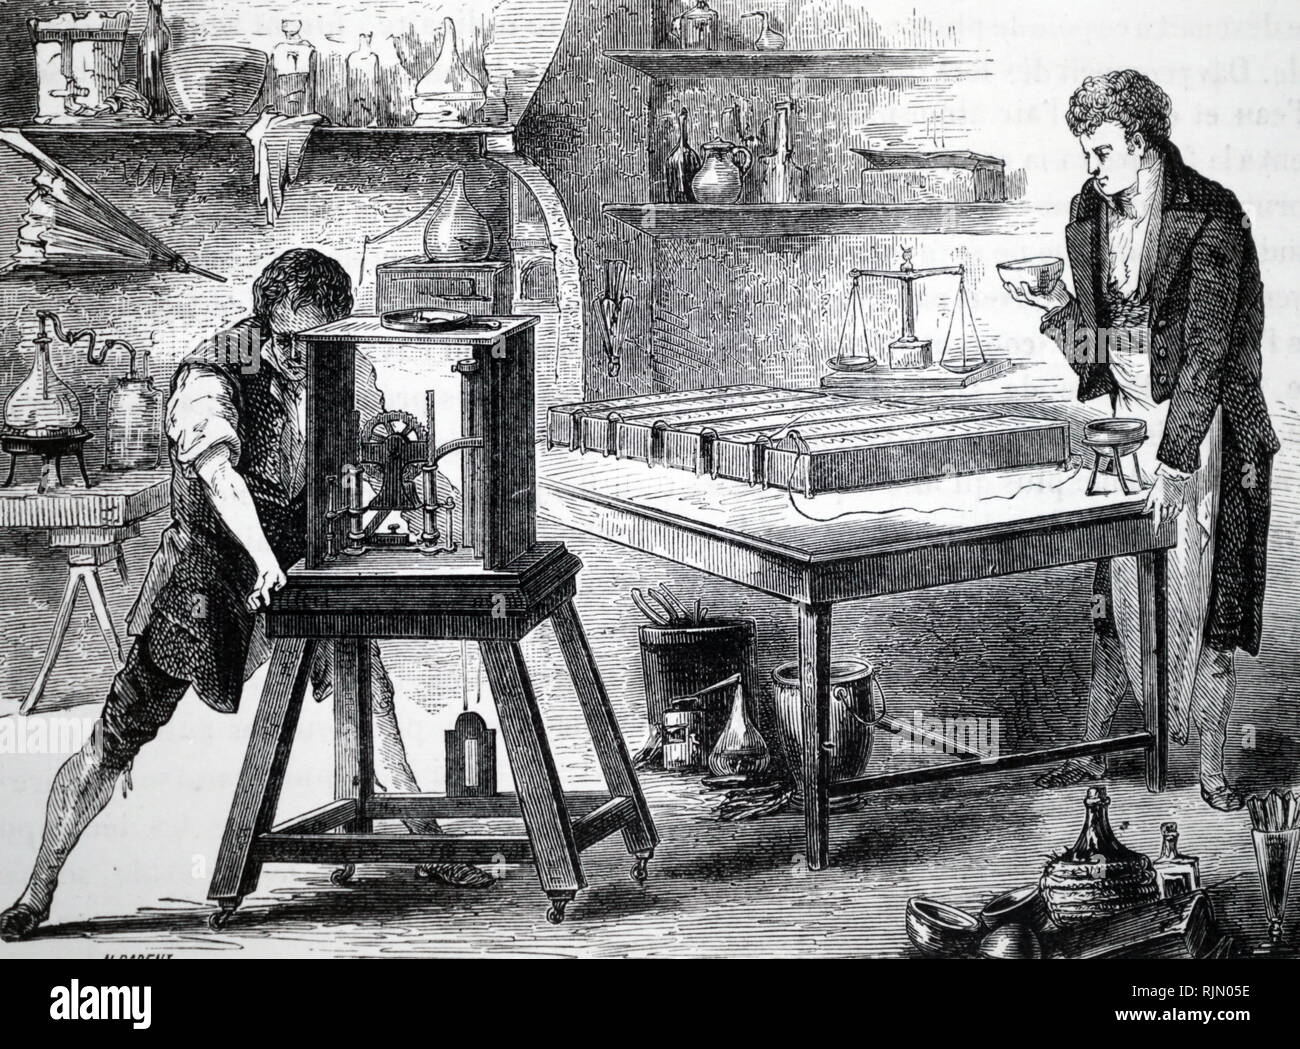 Illustration showing Humphry Davy using electrical decomposition to discover potassium and sodium (1807-8). Sir Humphry Davy (1778 - 1829), British chemist and inventor, best remembered for isolating, using electricity, a series of elements for the first time: potassium and sodium in 1807 and calcium, strontium, barium, magnesium and boron the following year, as well as discovering the elemental nature of chlorine and iodine. - Stock Image